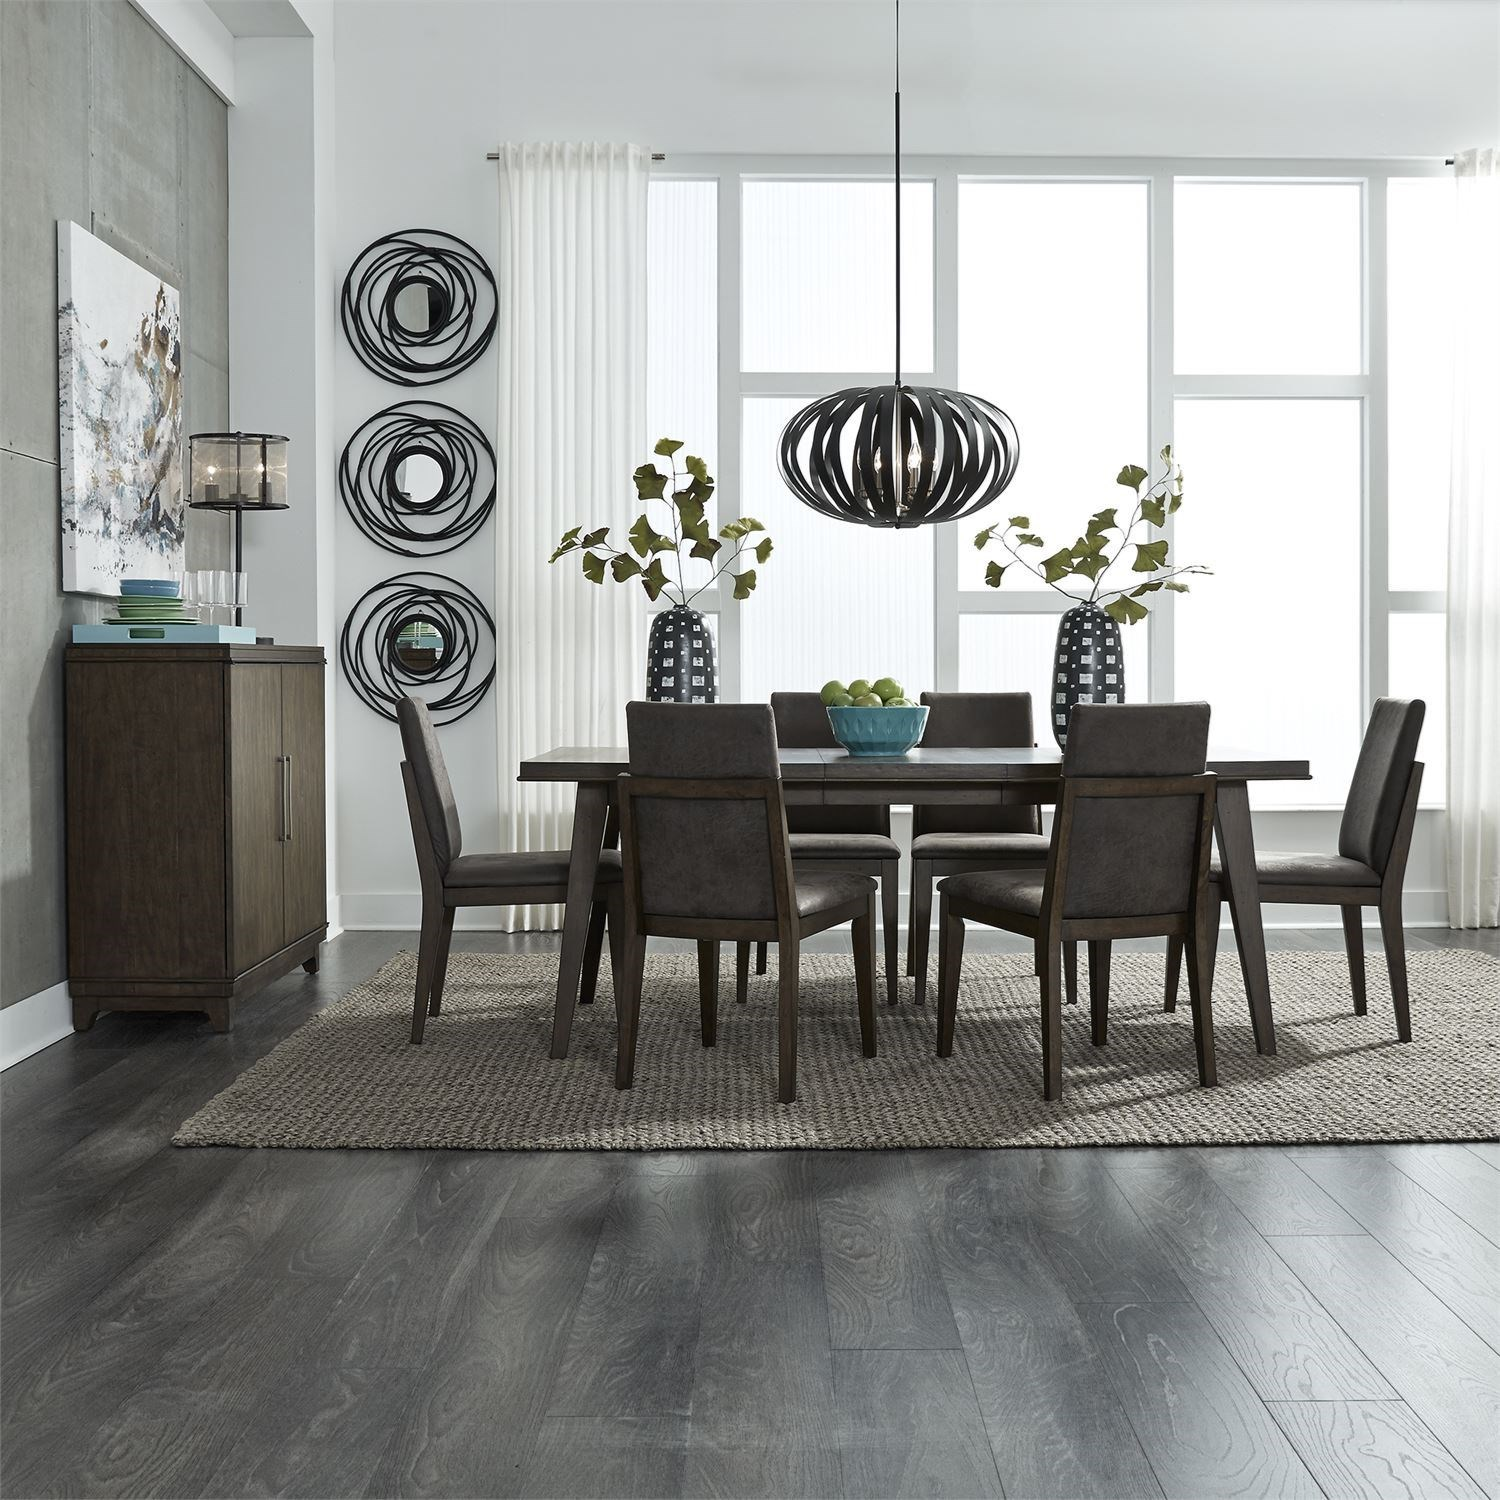 Ventura Boulevard Dining Room Group by Liberty Furniture at Northeast Factory Direct